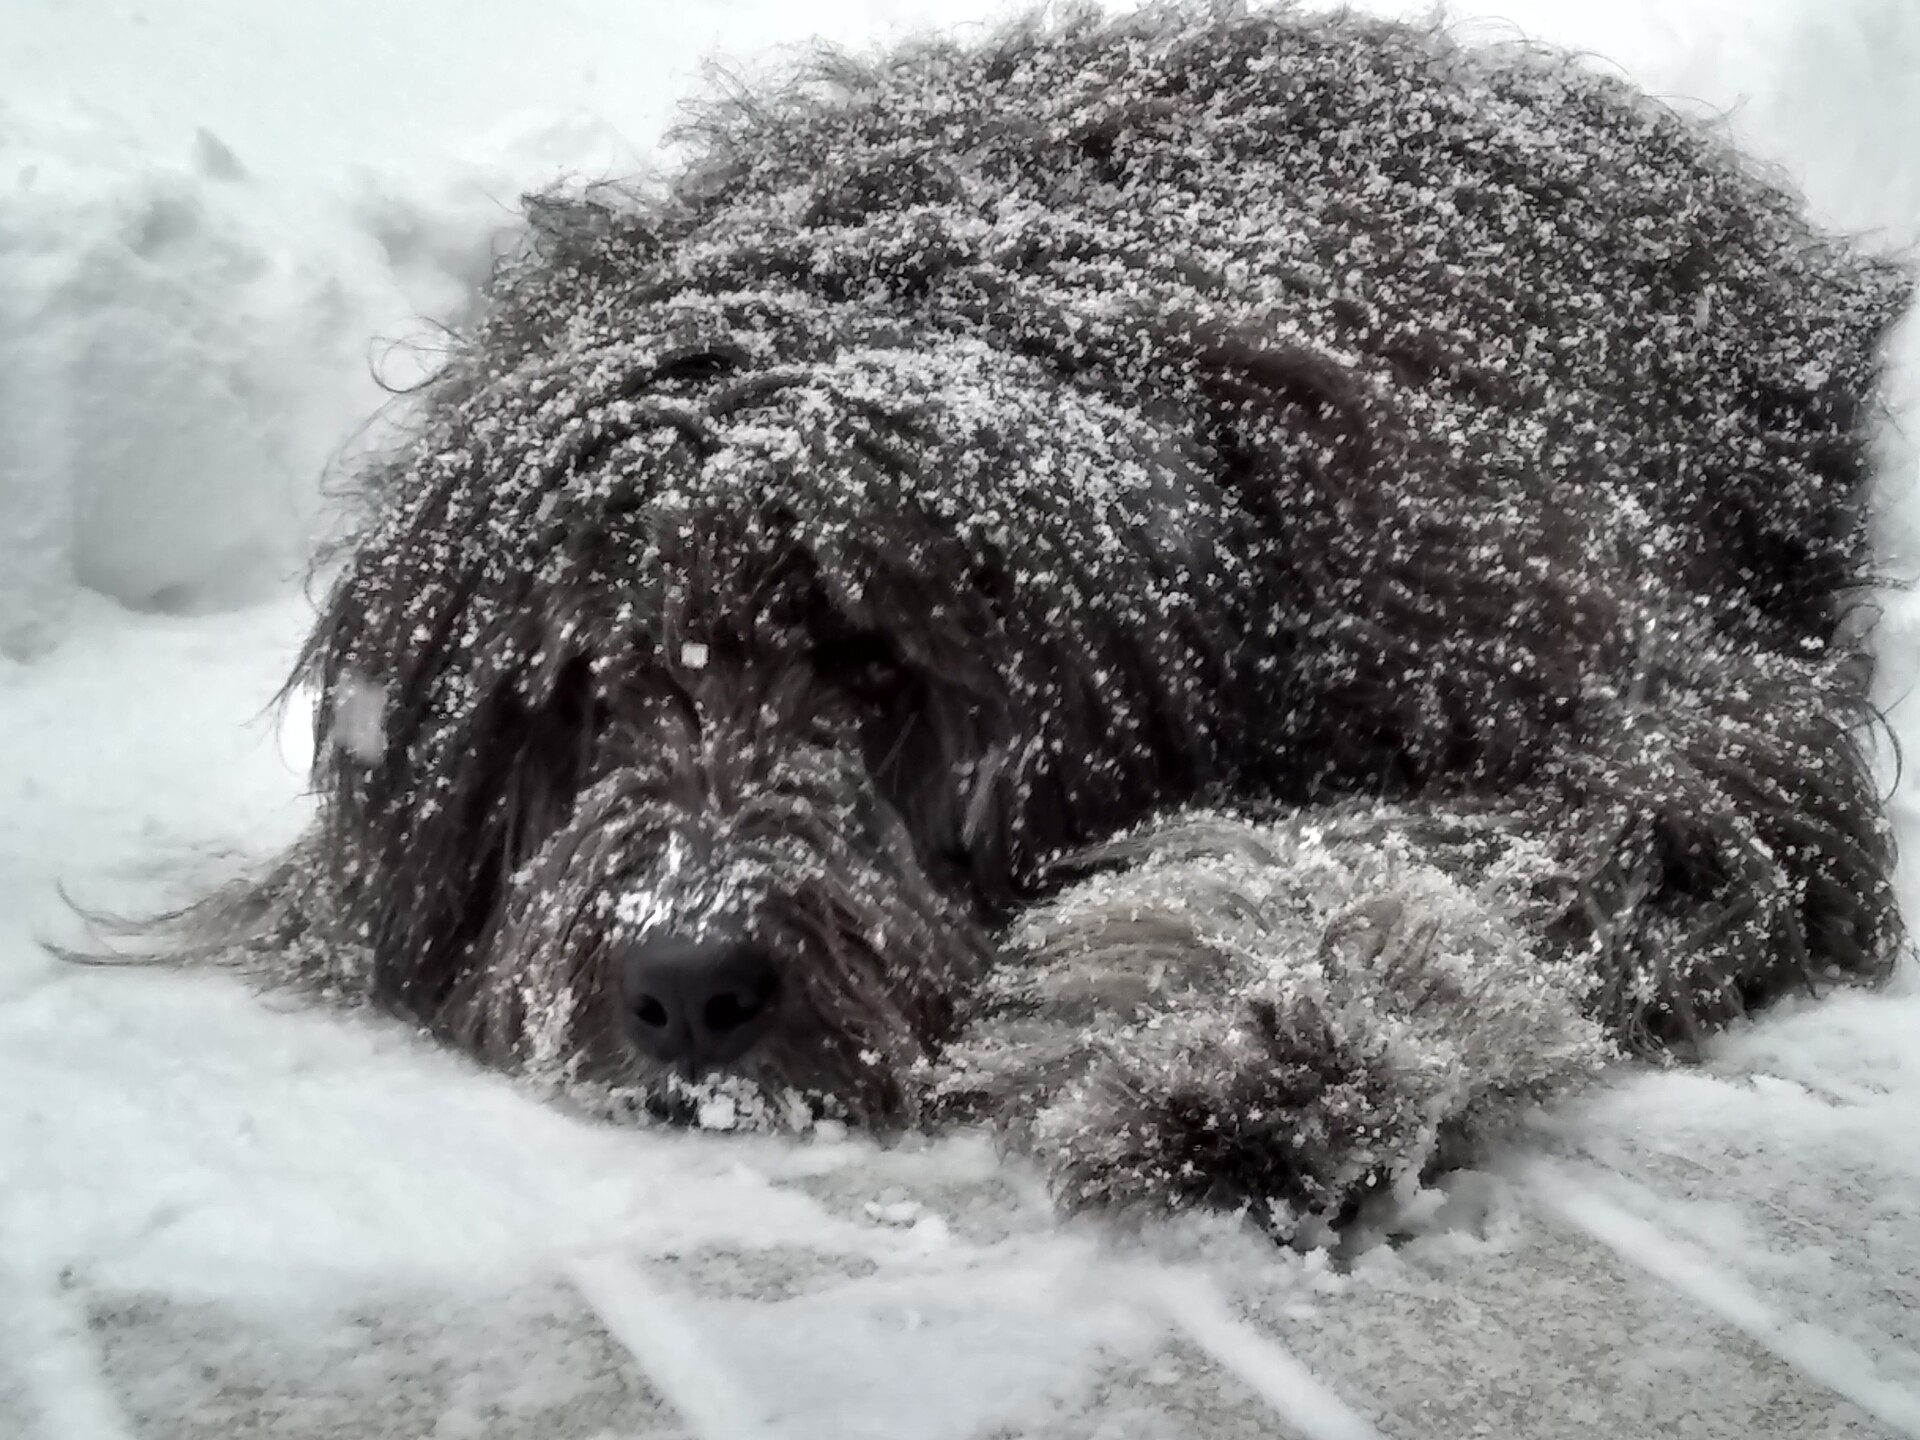 Grizzly loves the snow